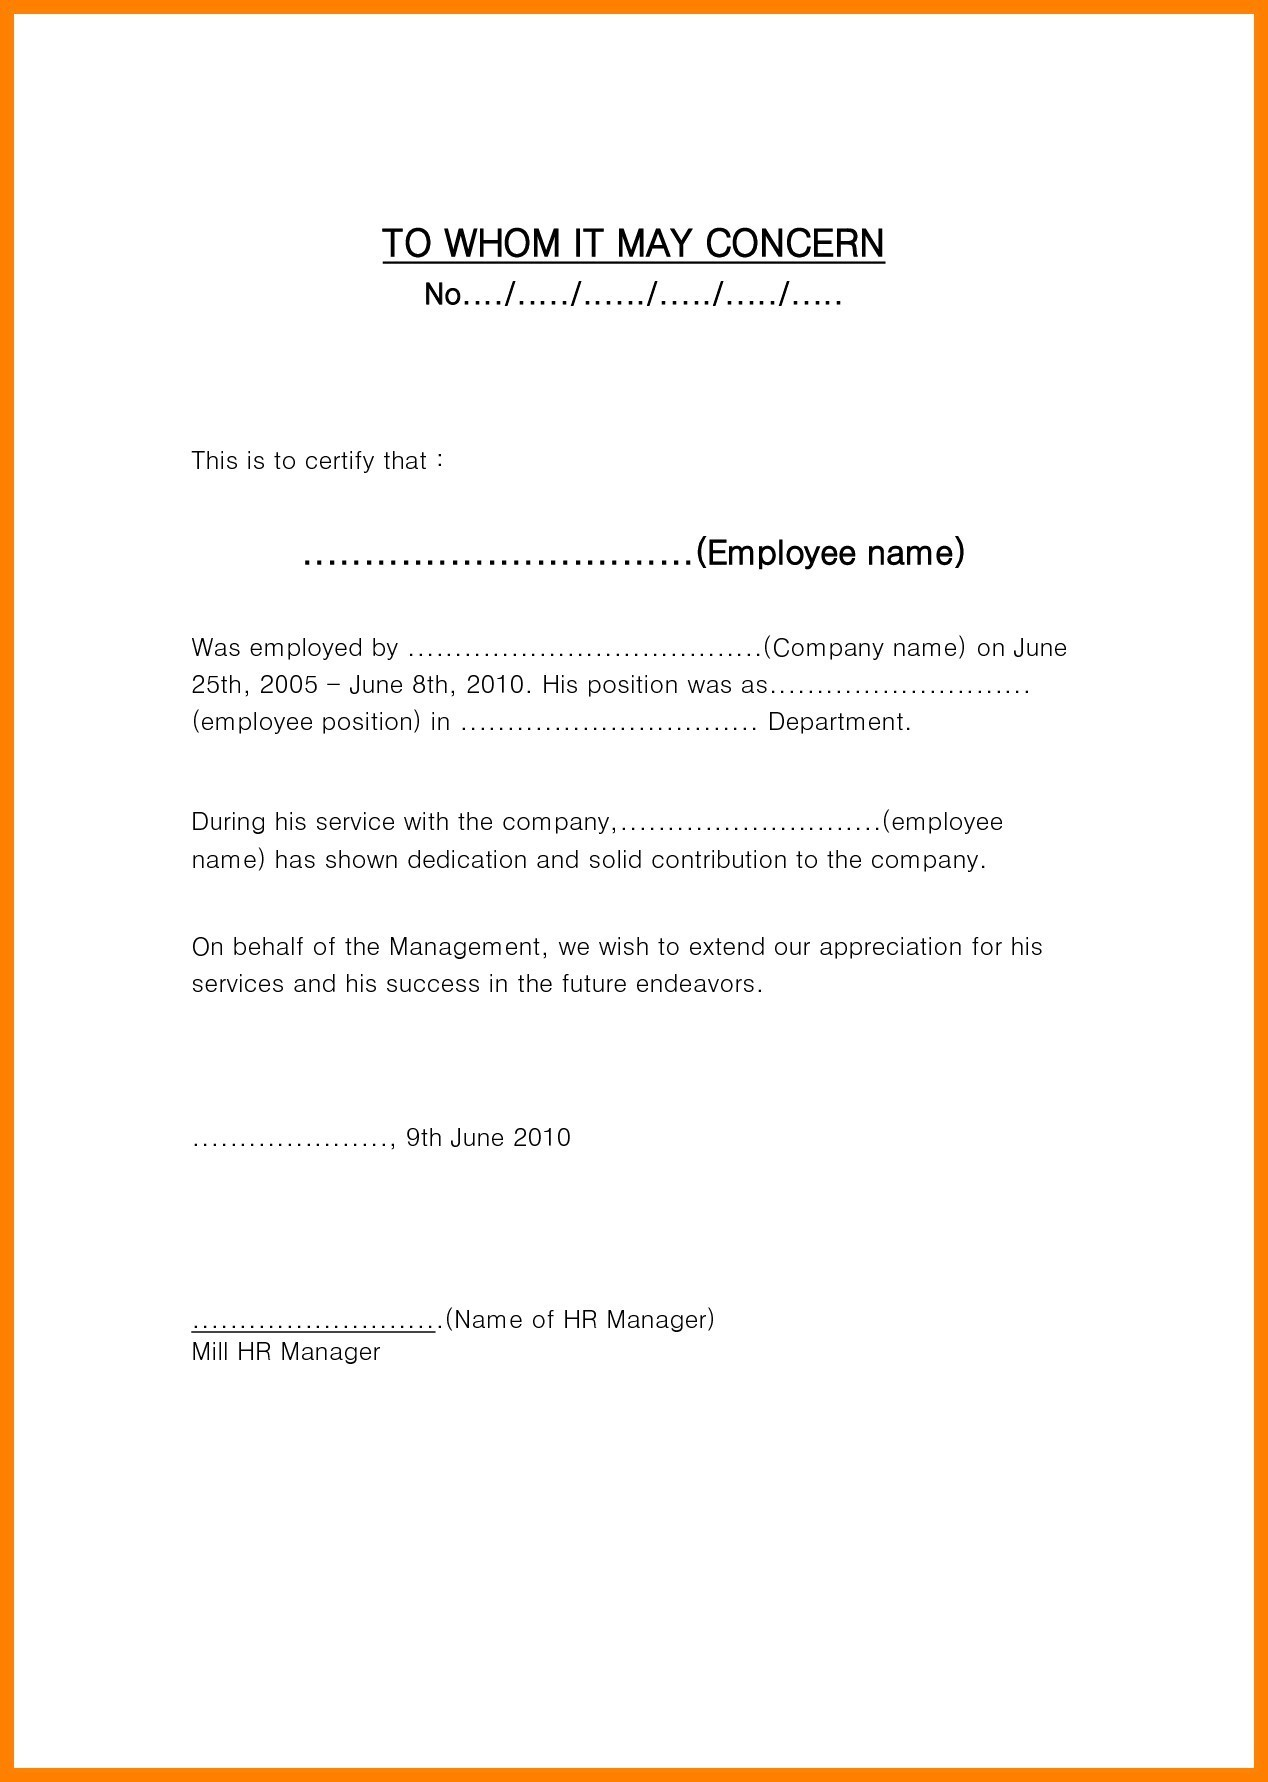 Employment Verification Letter to whom It May Concern Template - to whom It May Concern Letter format for Employees New Employment